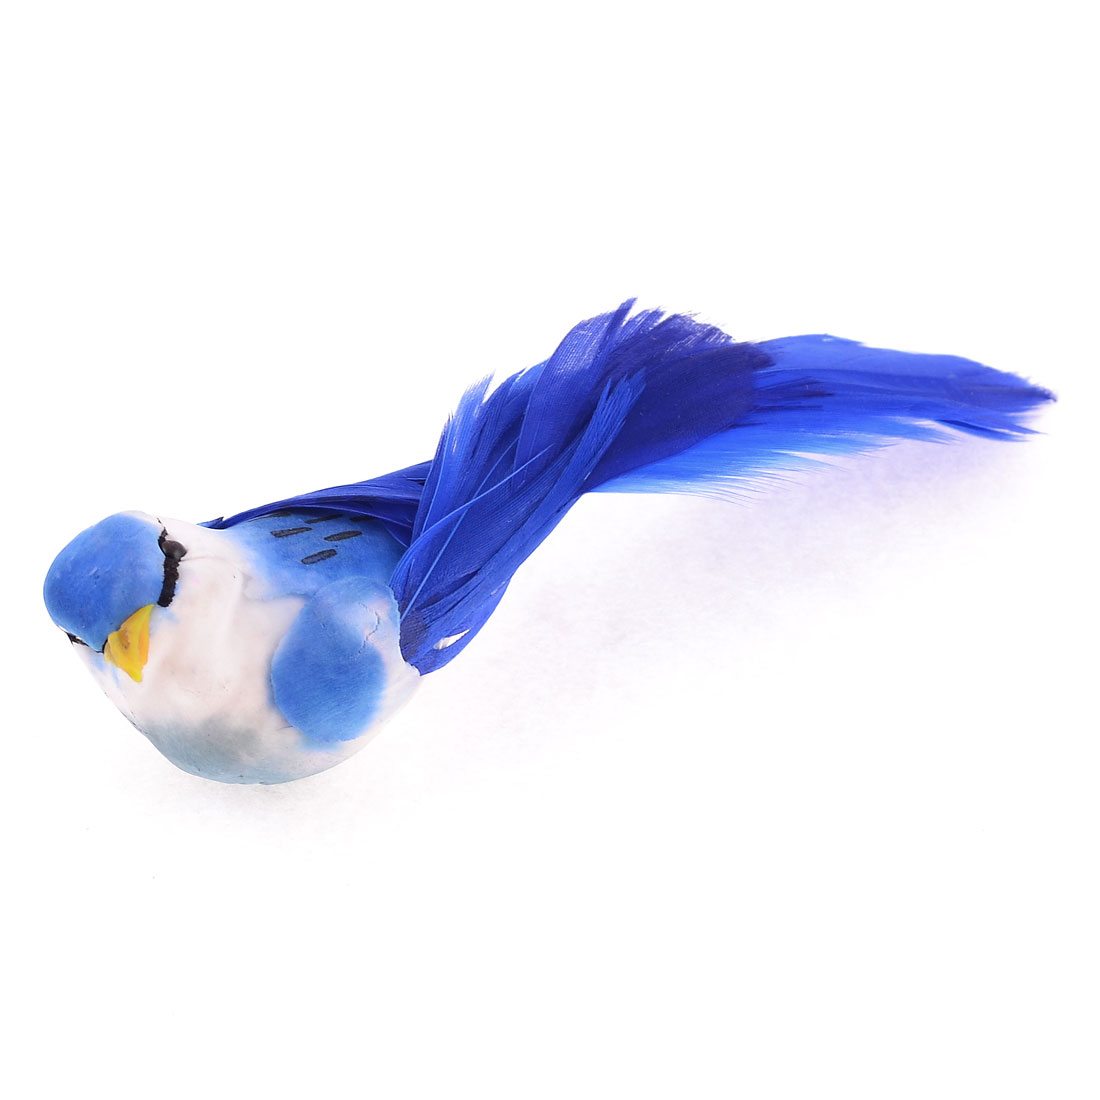 Foam Magnetic Body Plastic Mouth Faux Feathers Manmade Bird Toy Blue